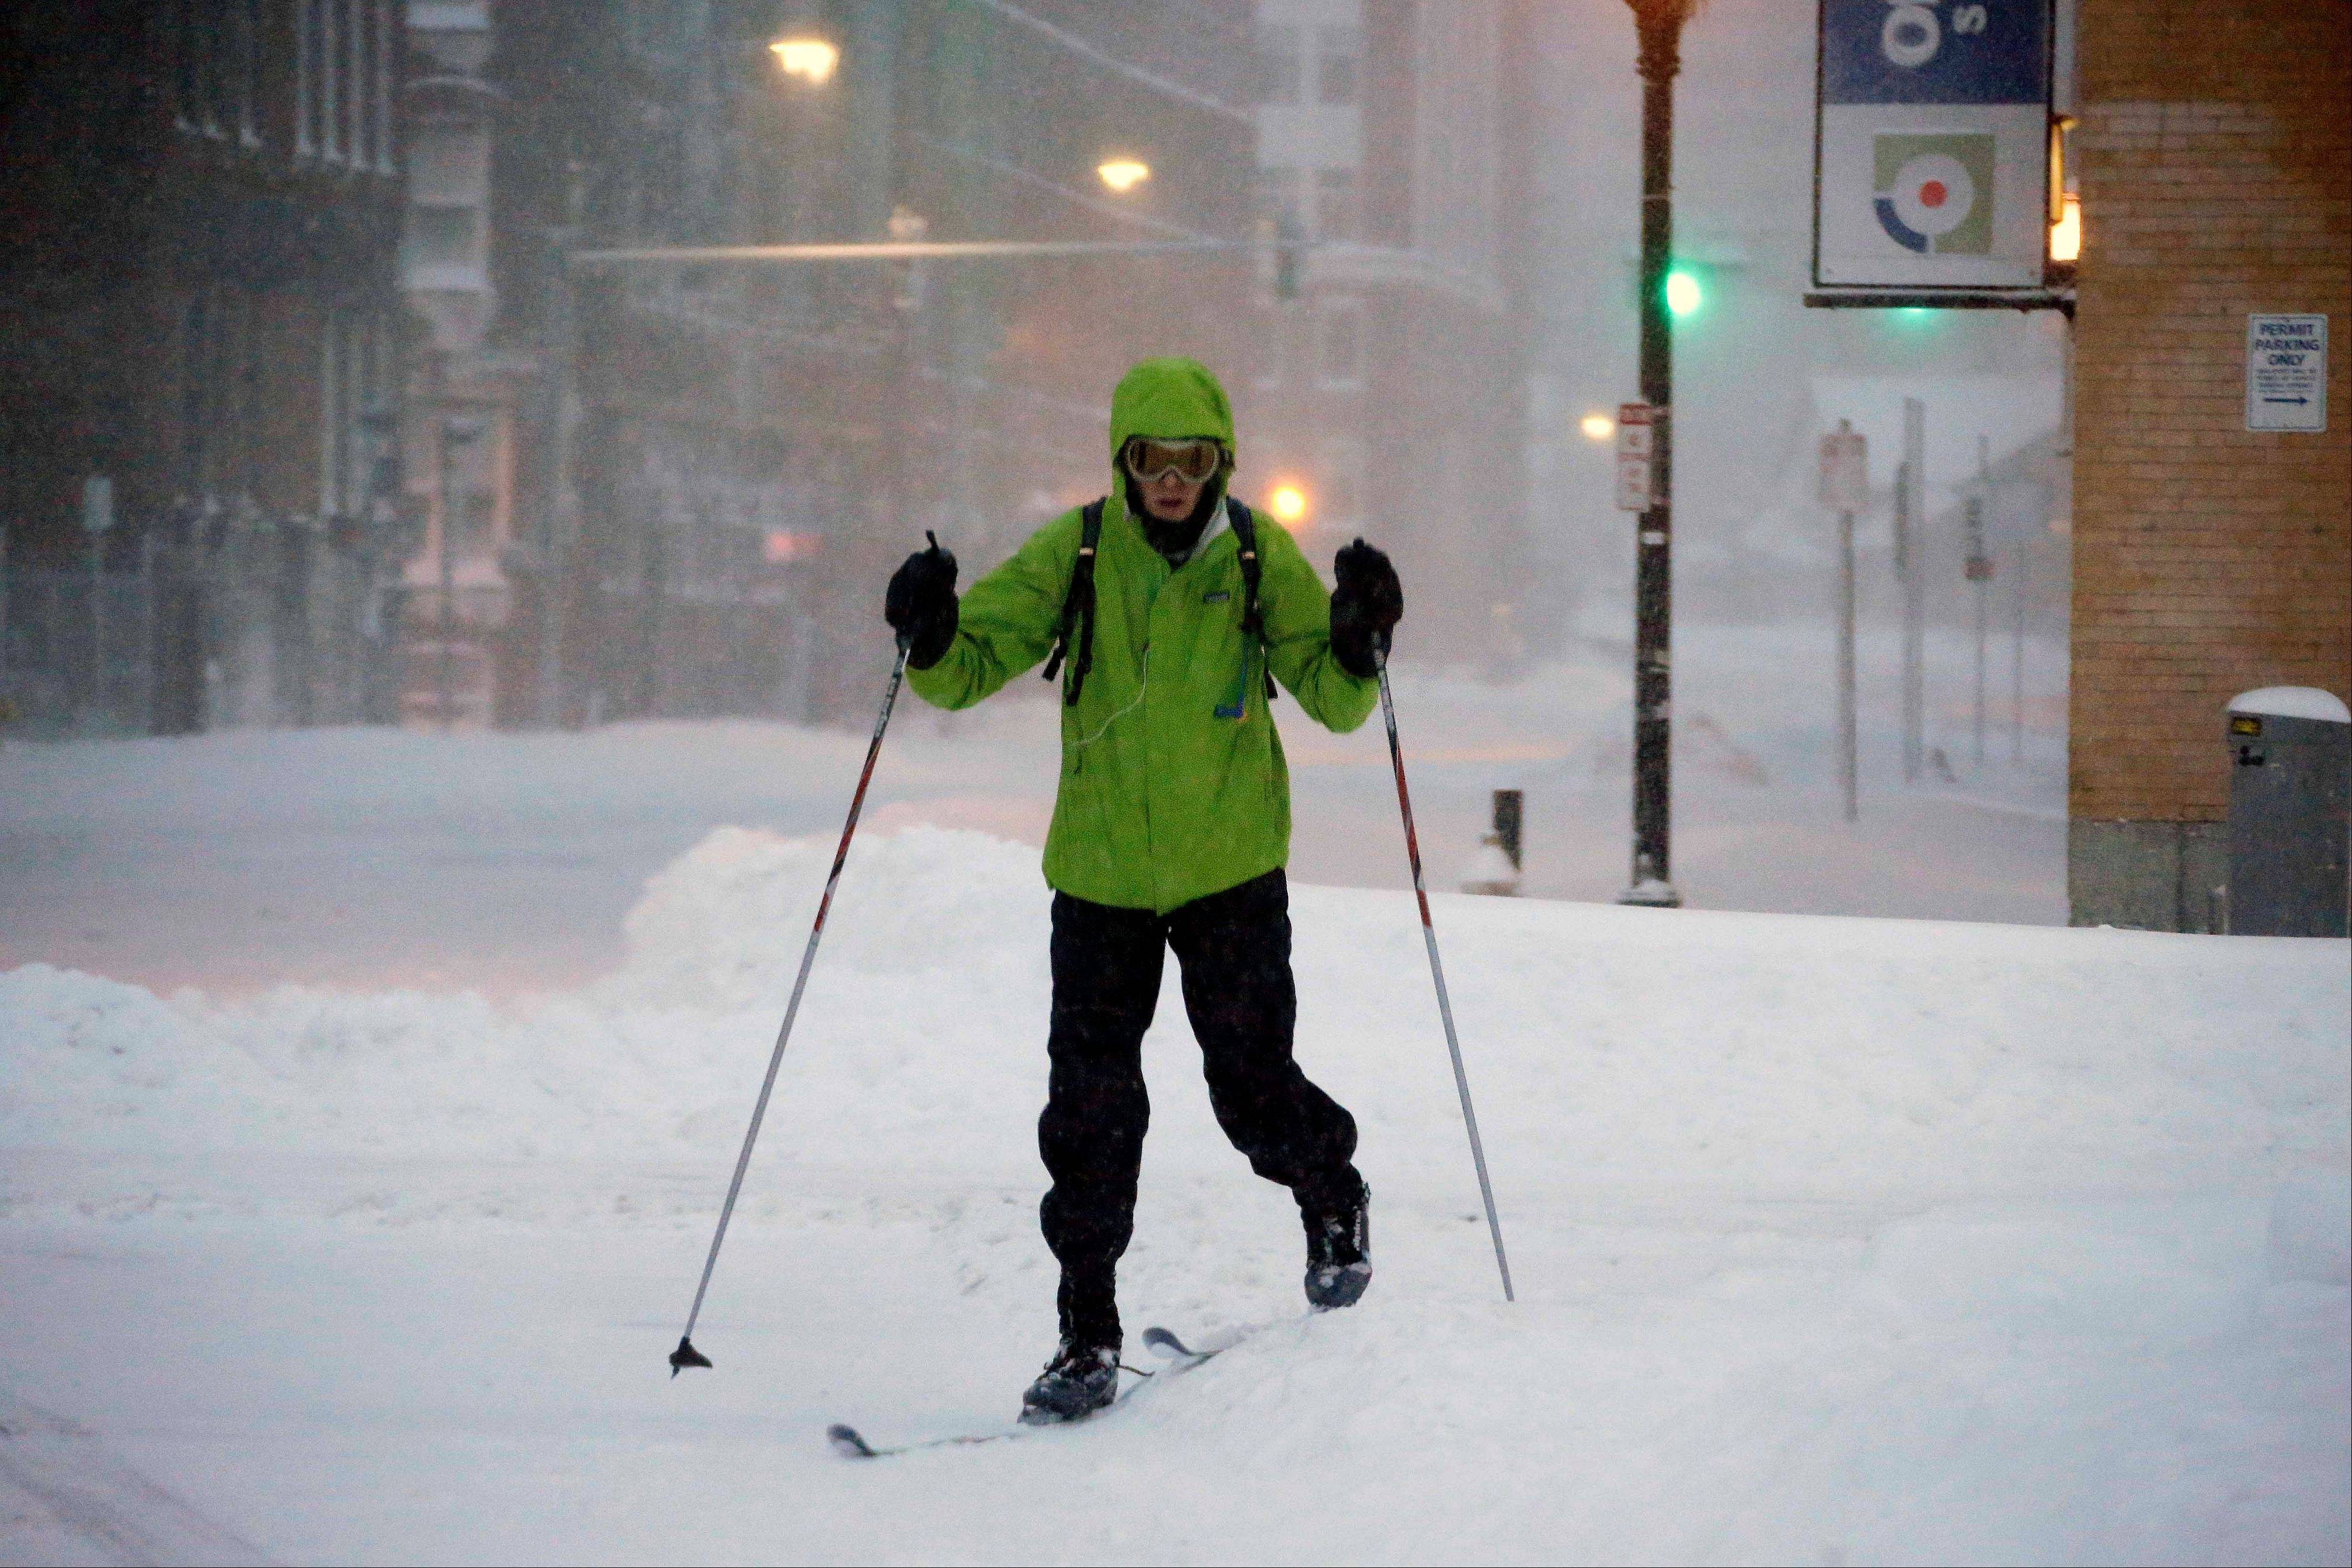 A pedestrian uses skis to travel through the deserted snow-covered streets of Boston early Saturday, Feb. 9, 2013.